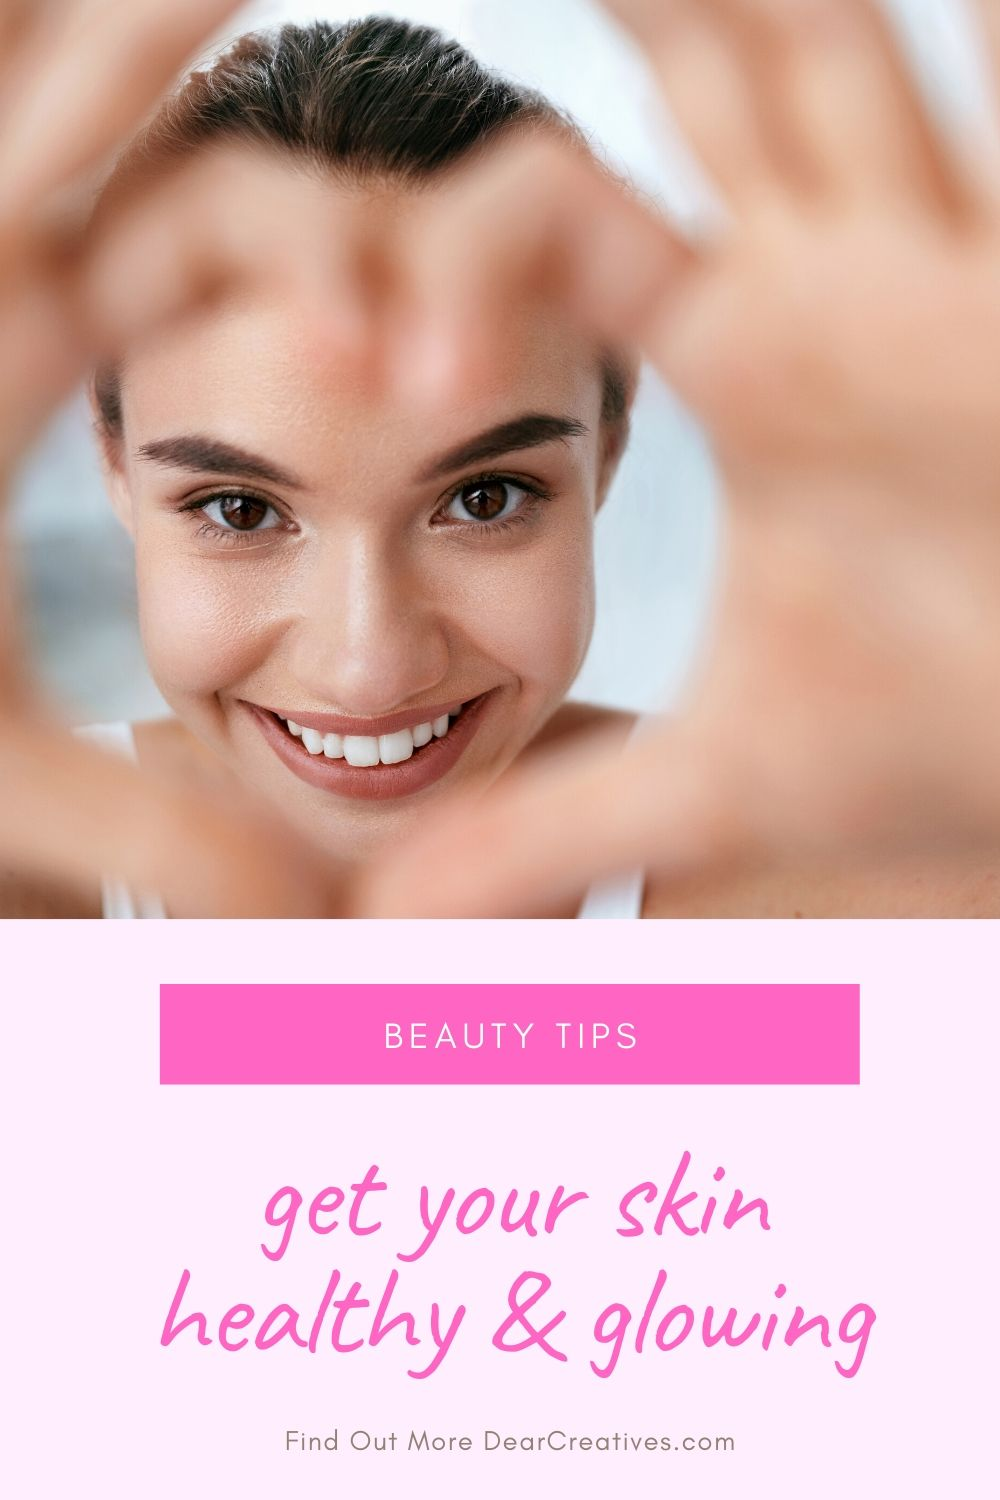 Clean Skin - Top 11 Picks For Glowing Skin! - Dear Creatives